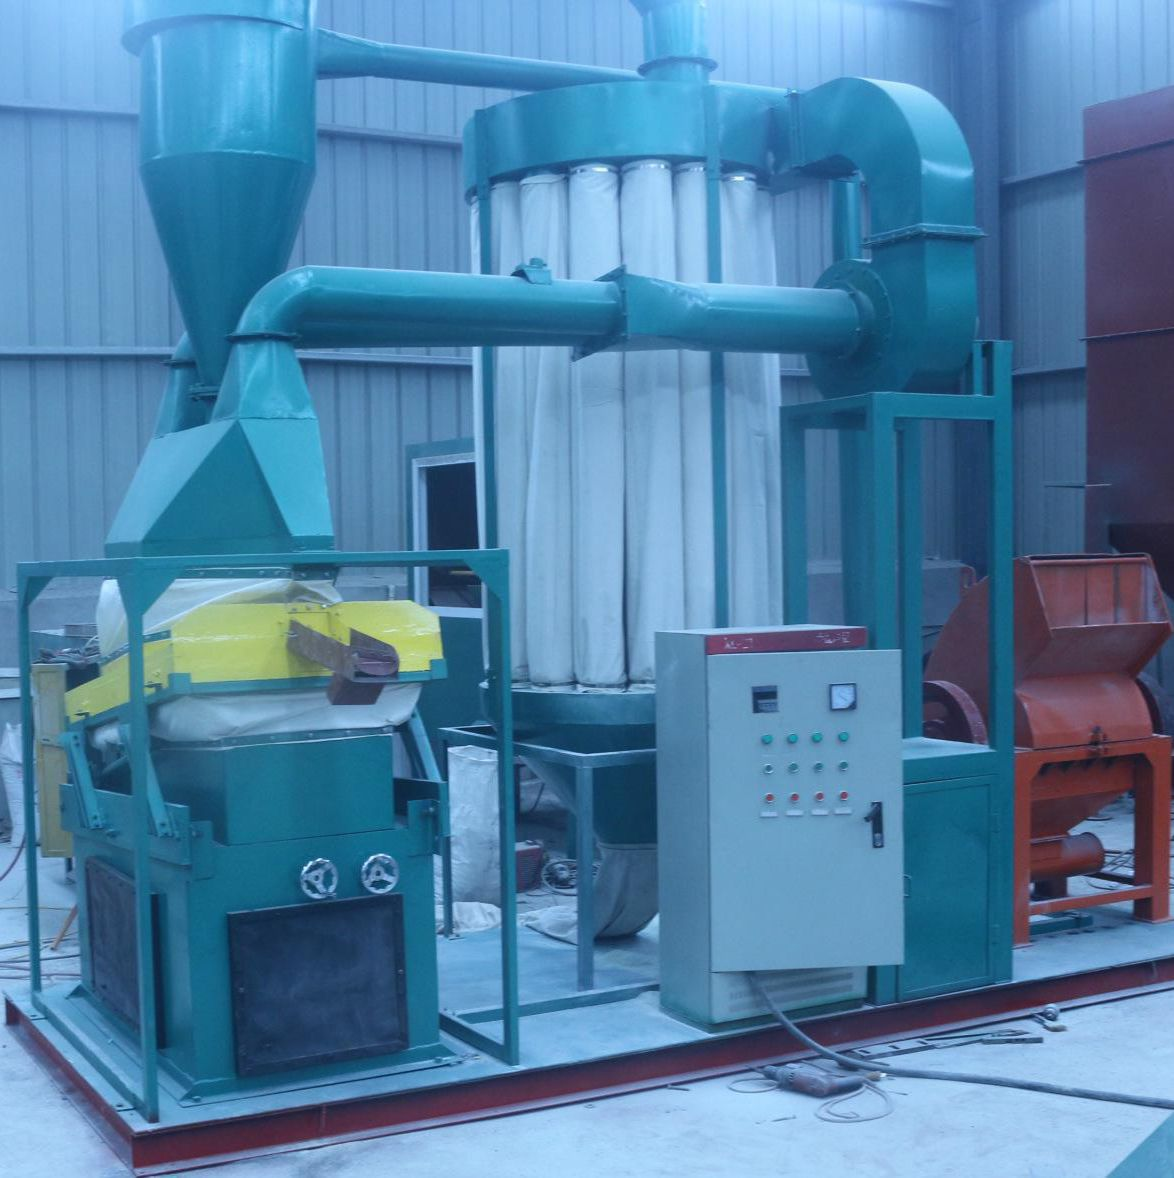 hight resolution of granulation and recycling machine for copper aluminum wire cable wiring harnesses communication cables household electric wire